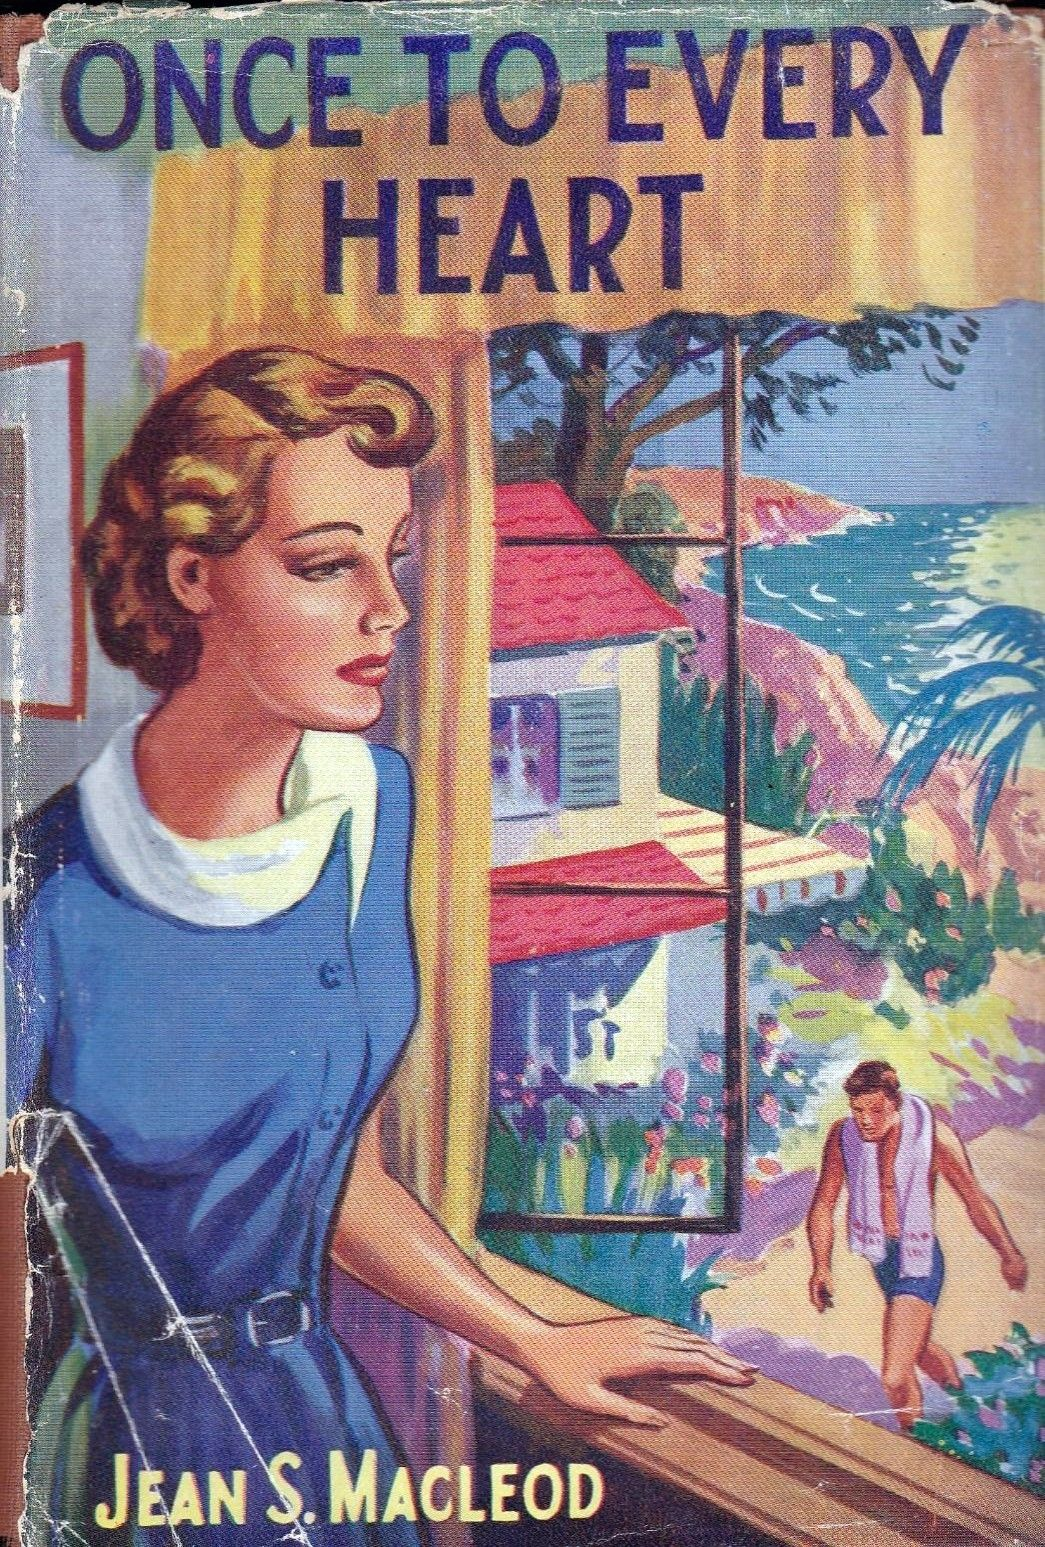 Once To Every Heart by Jean S. MacLeod published by Mills and Boon in 1951